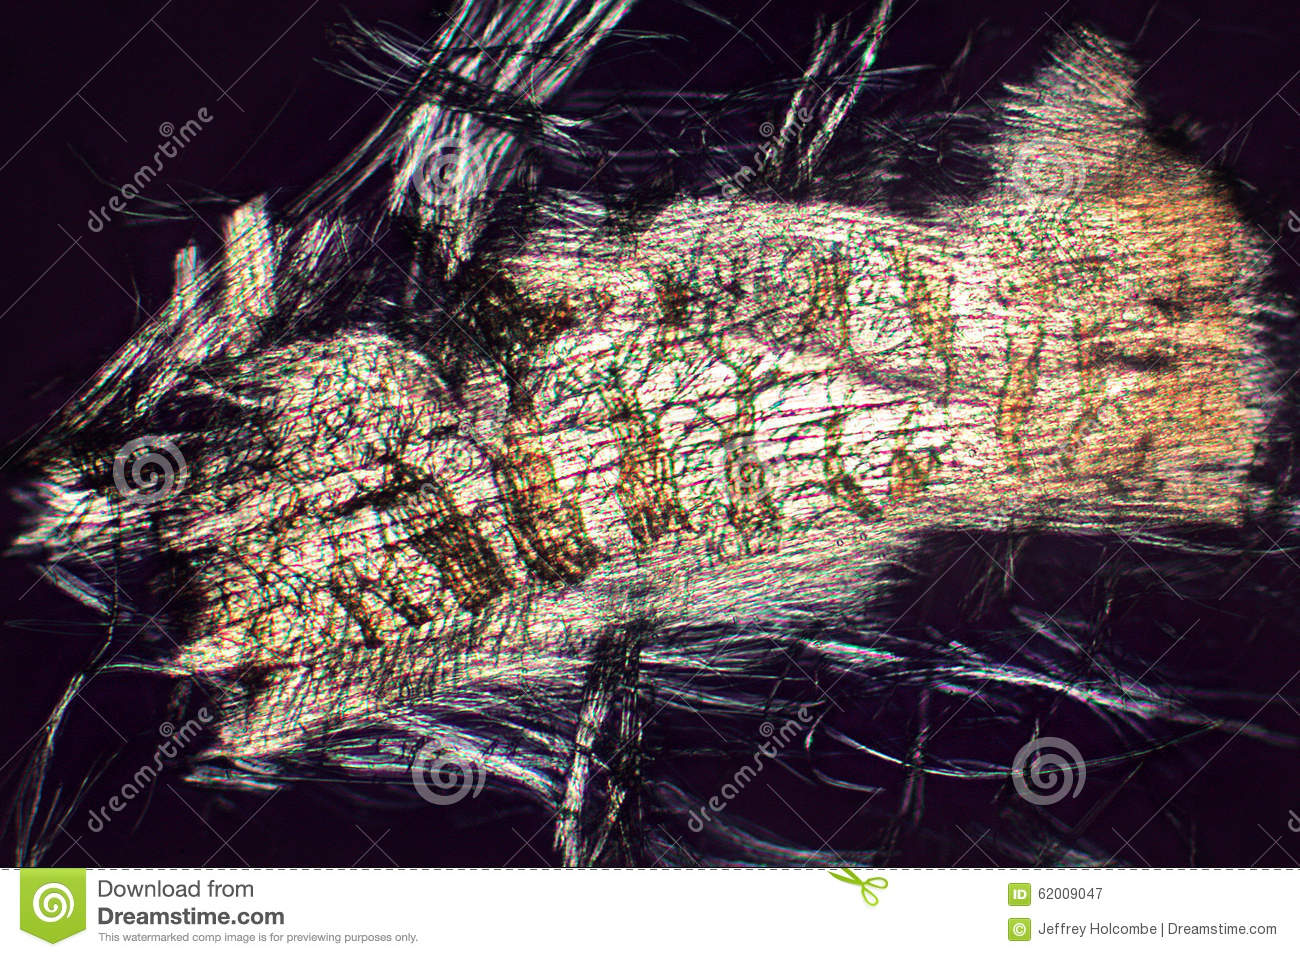 Micrograph abstract of flight muscle cells from a bottle fly.